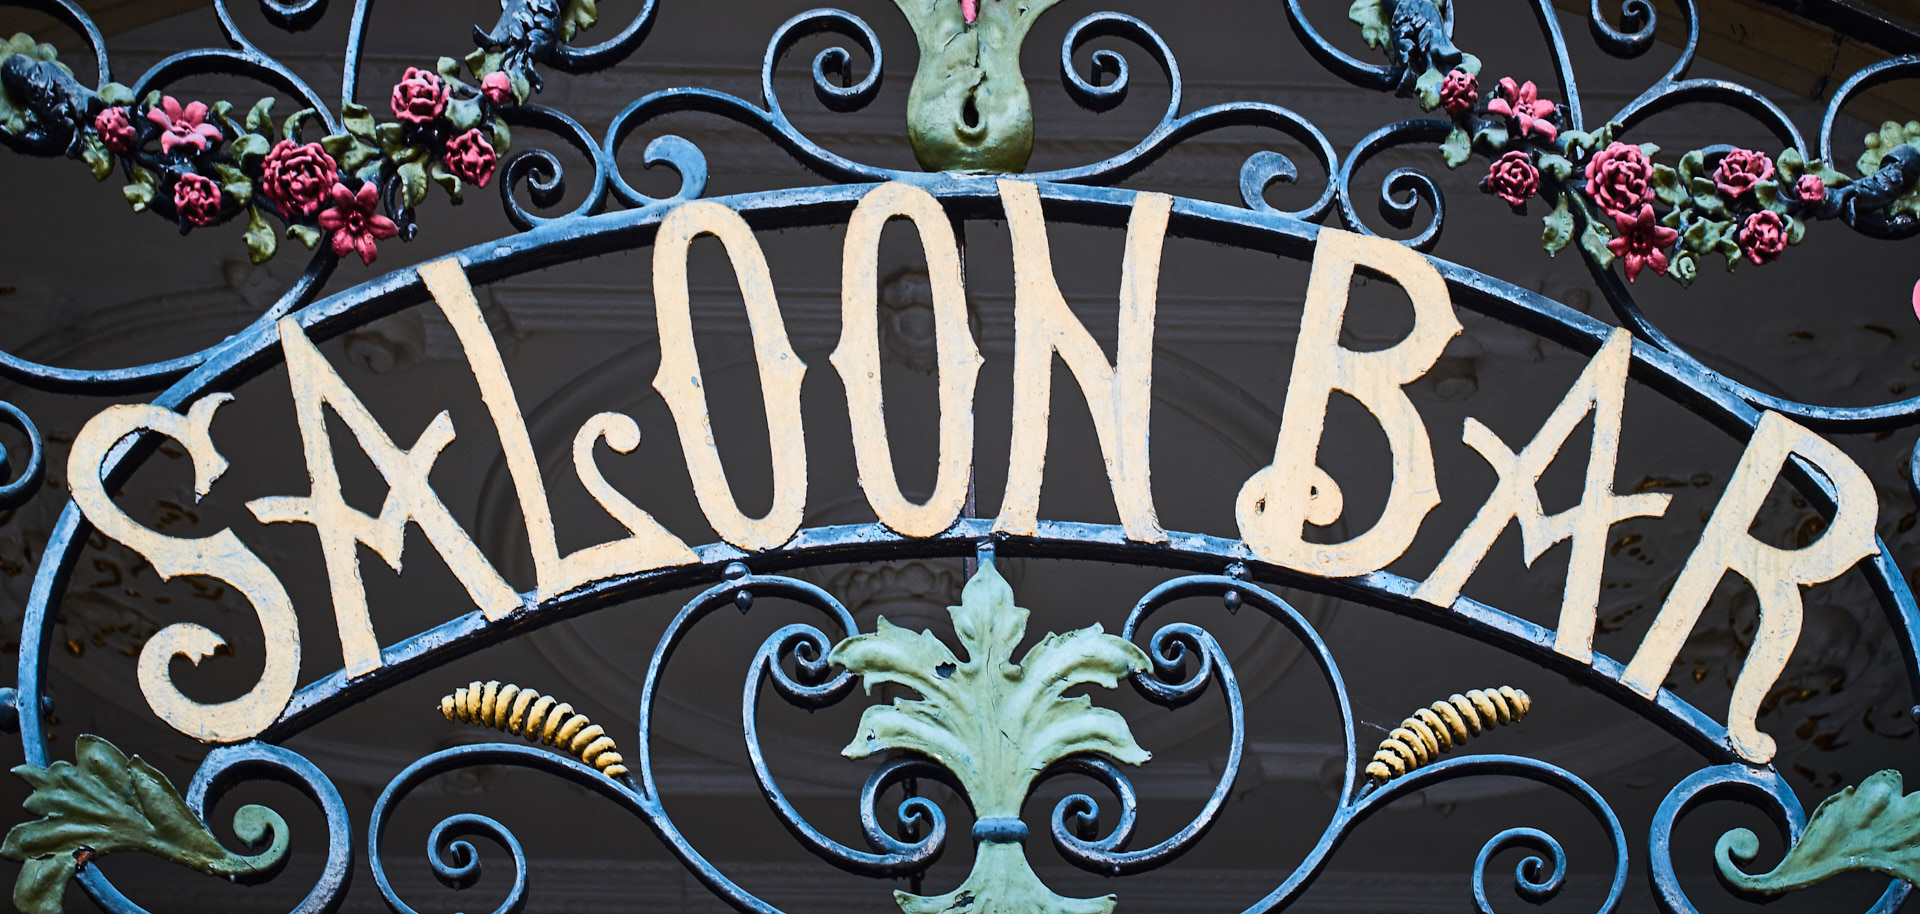 Wrought iron Saloon Bar sign.